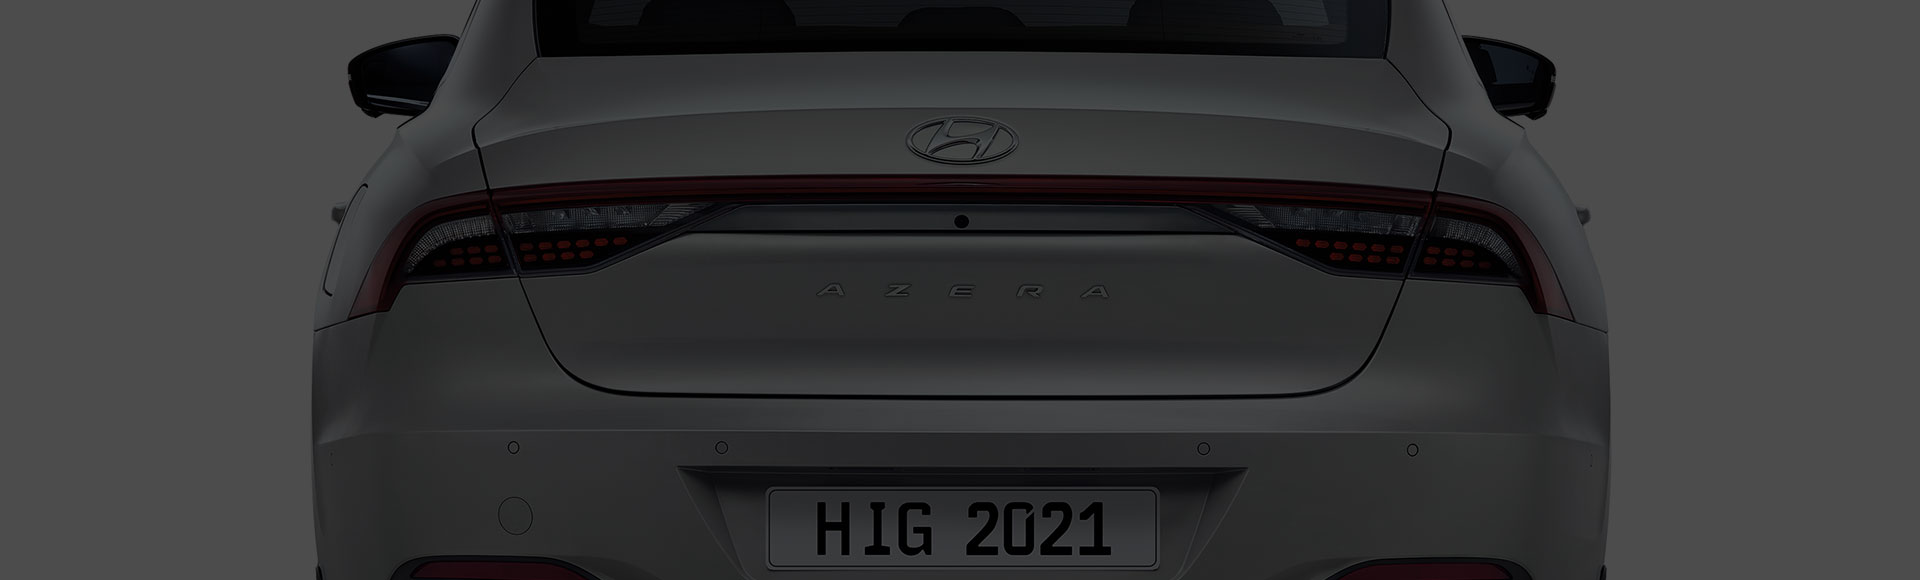 Azera exterior rear design